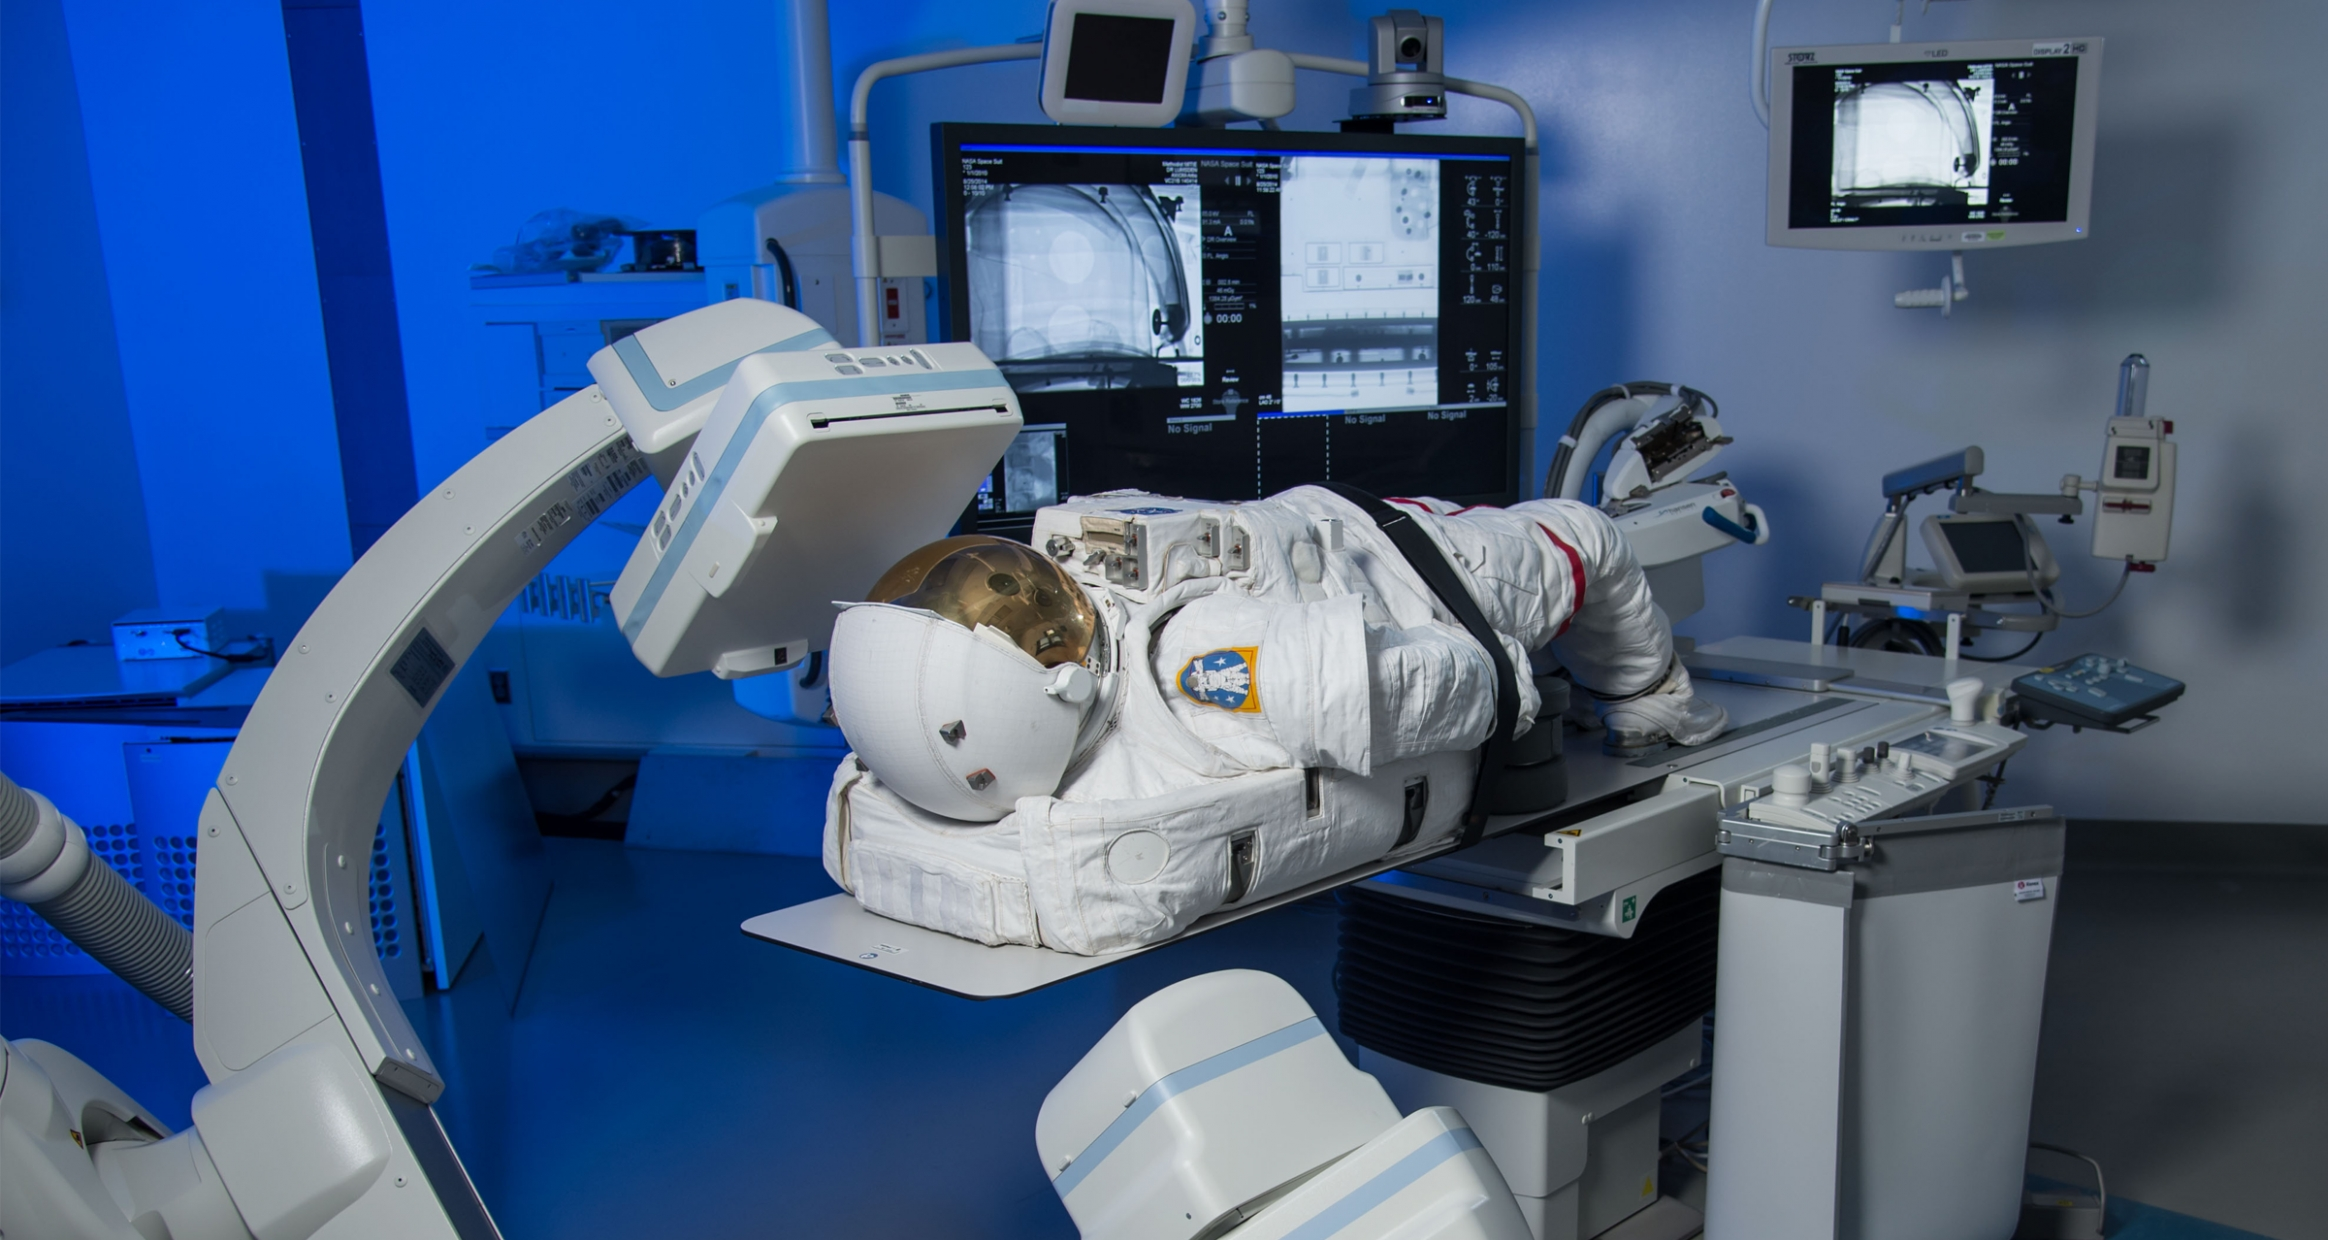 space suit on hospital bed